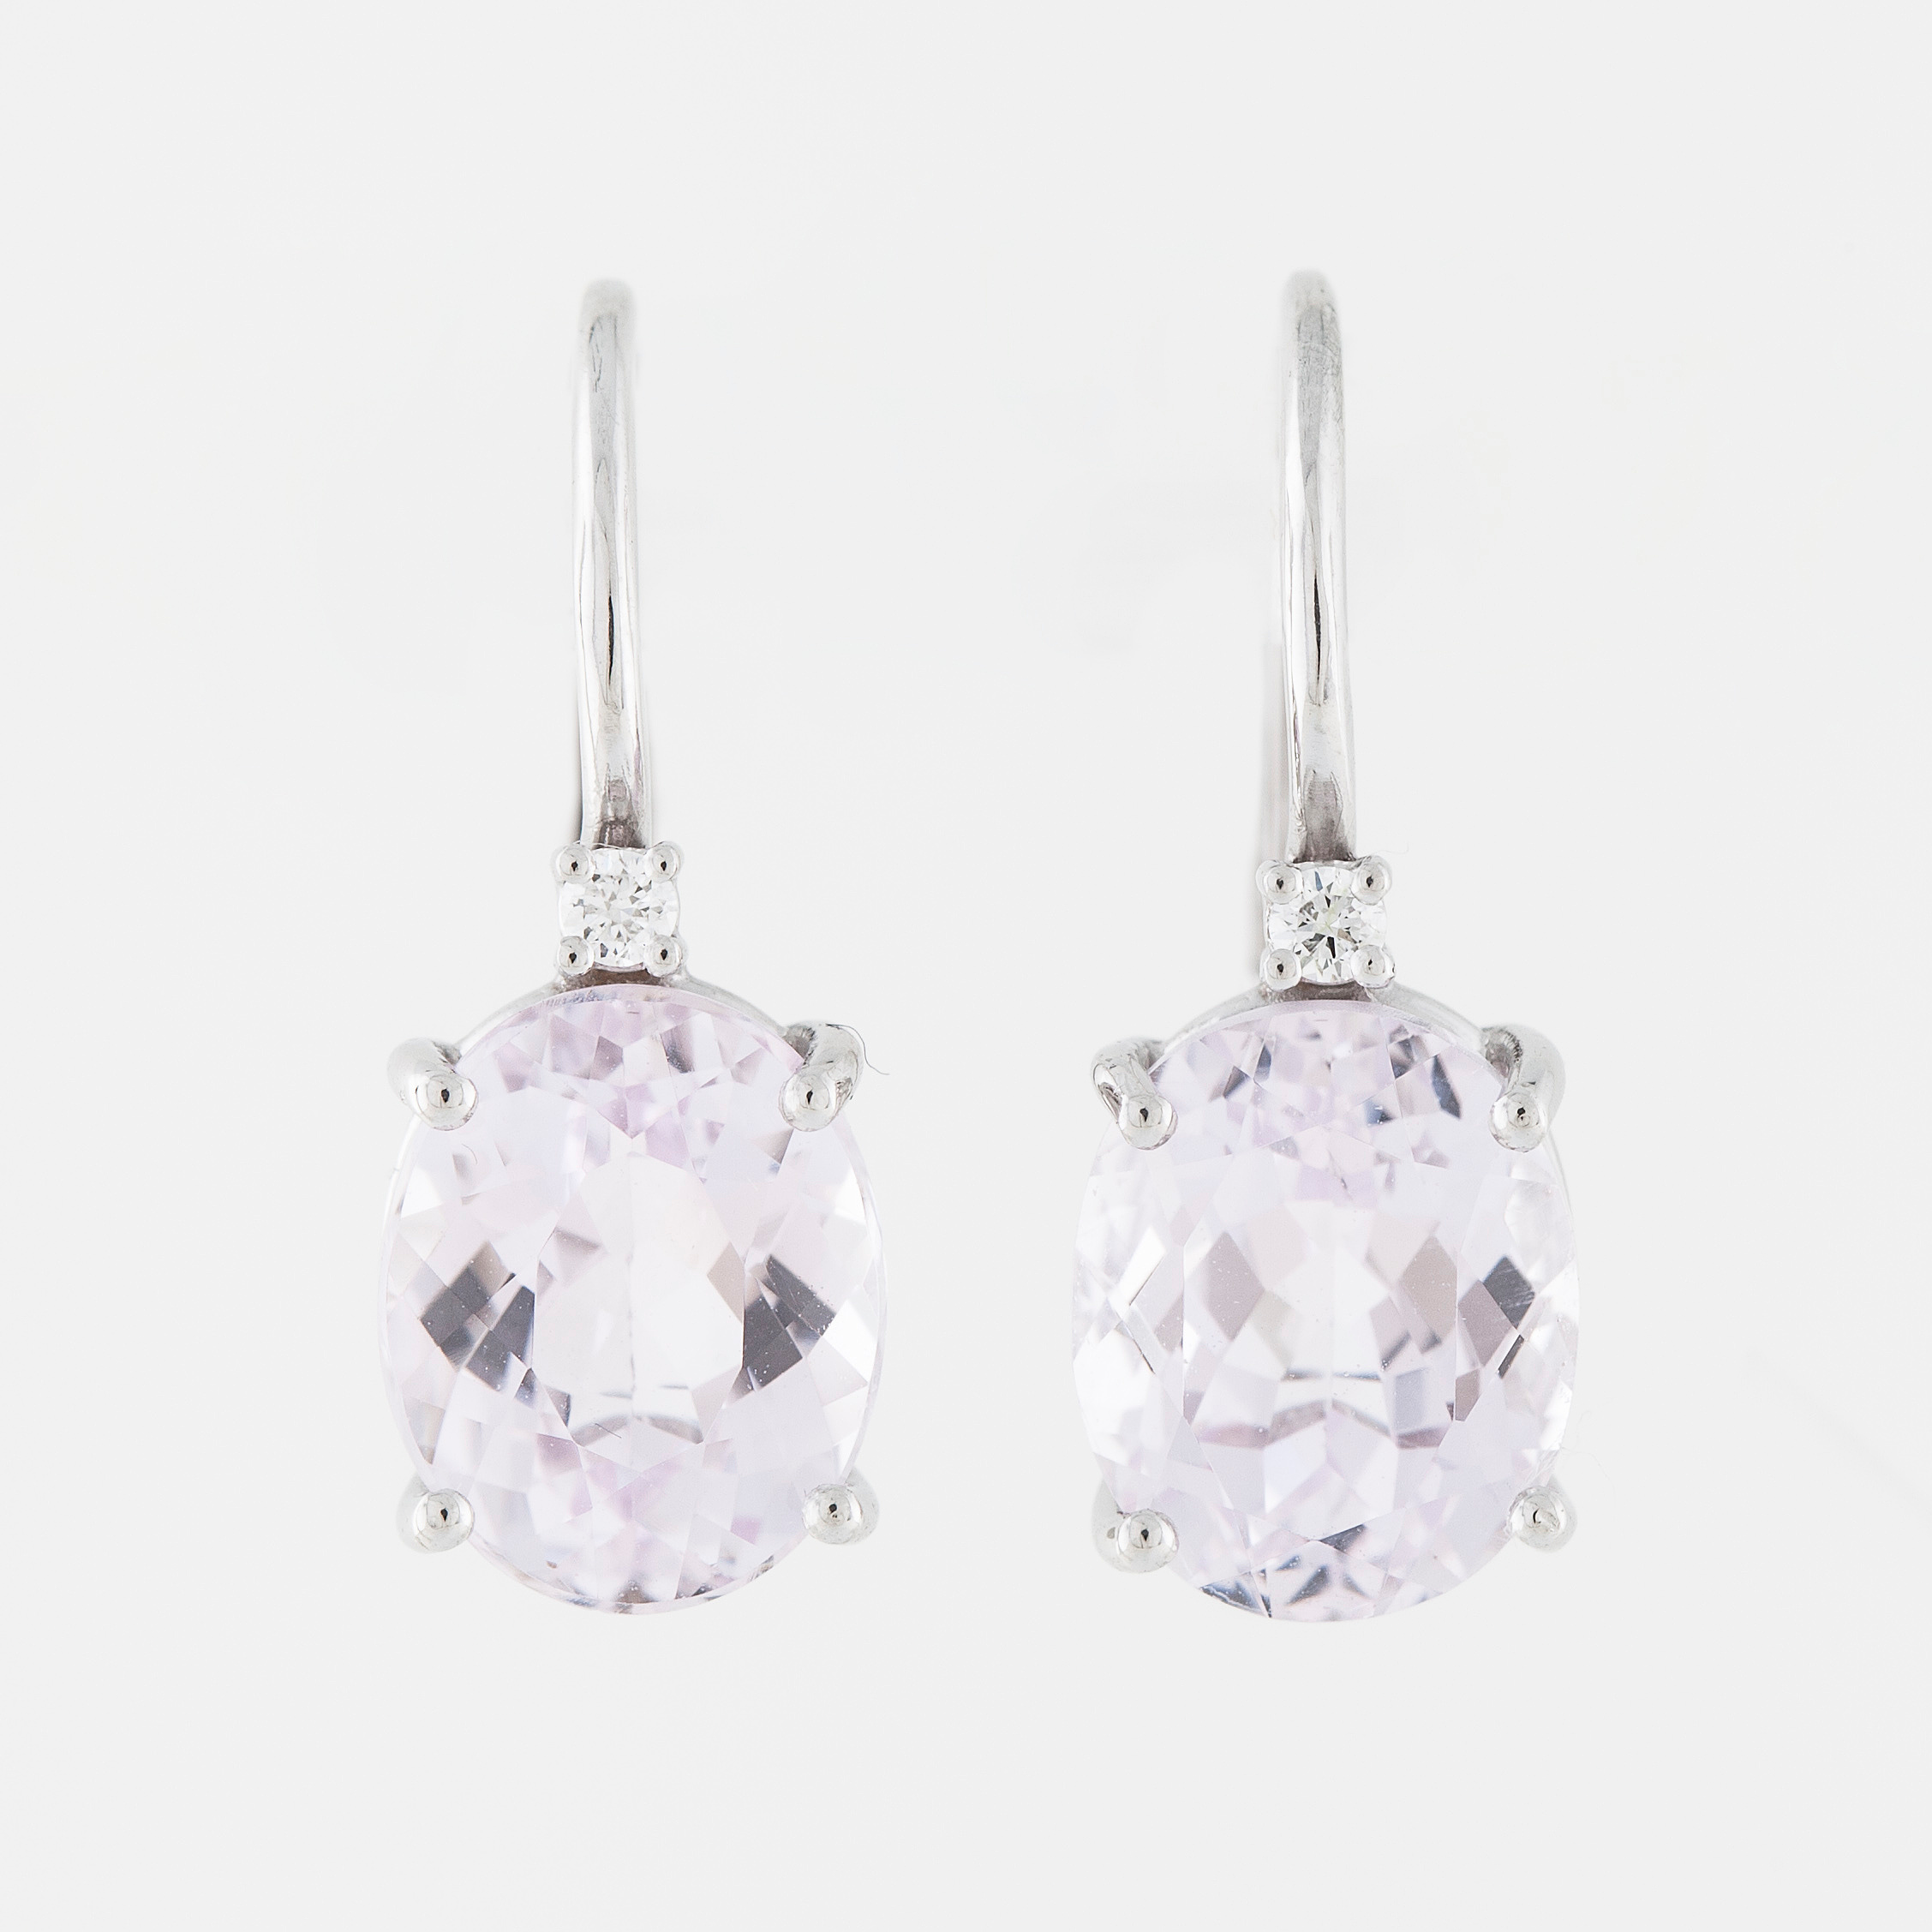 org sphere kothari products diamond ko crystal earrings szor rock collections kunzite white gravity drop